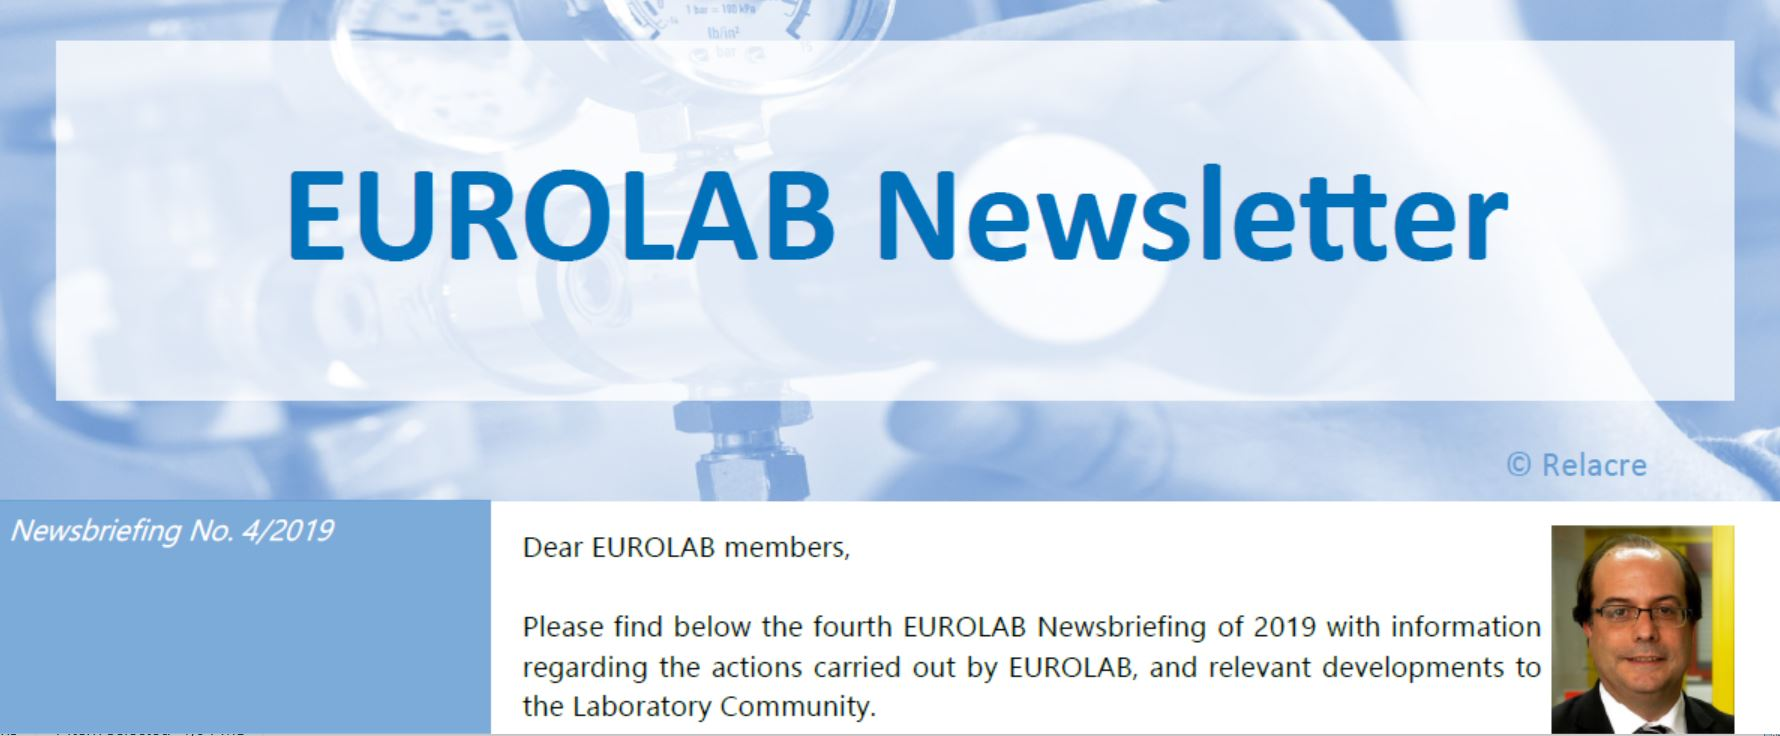 Newsletter no.4/2019 – EUROLAB